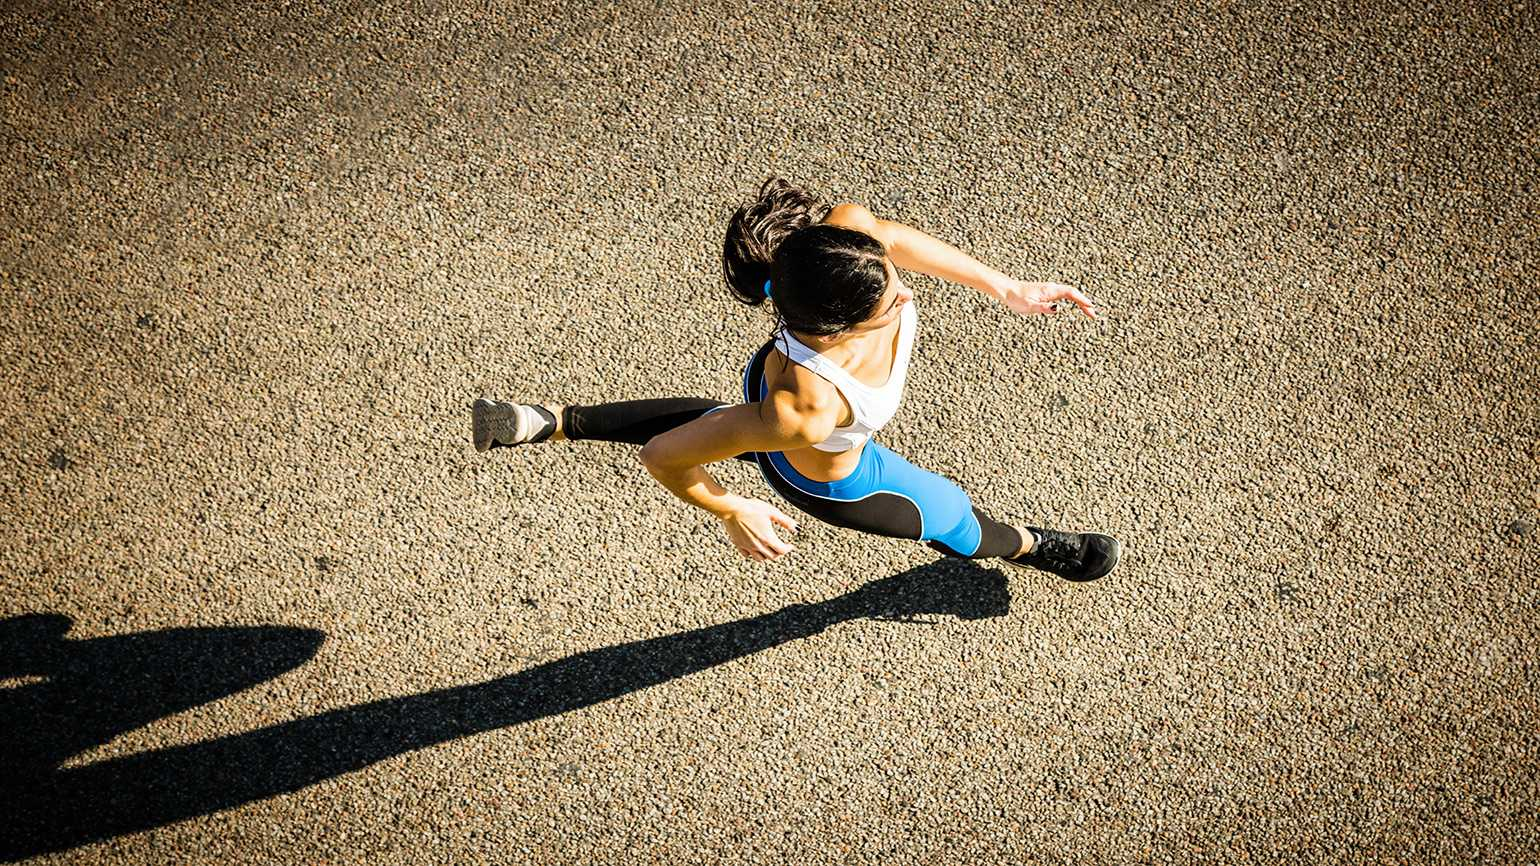 Overhead shot of woman running marathon